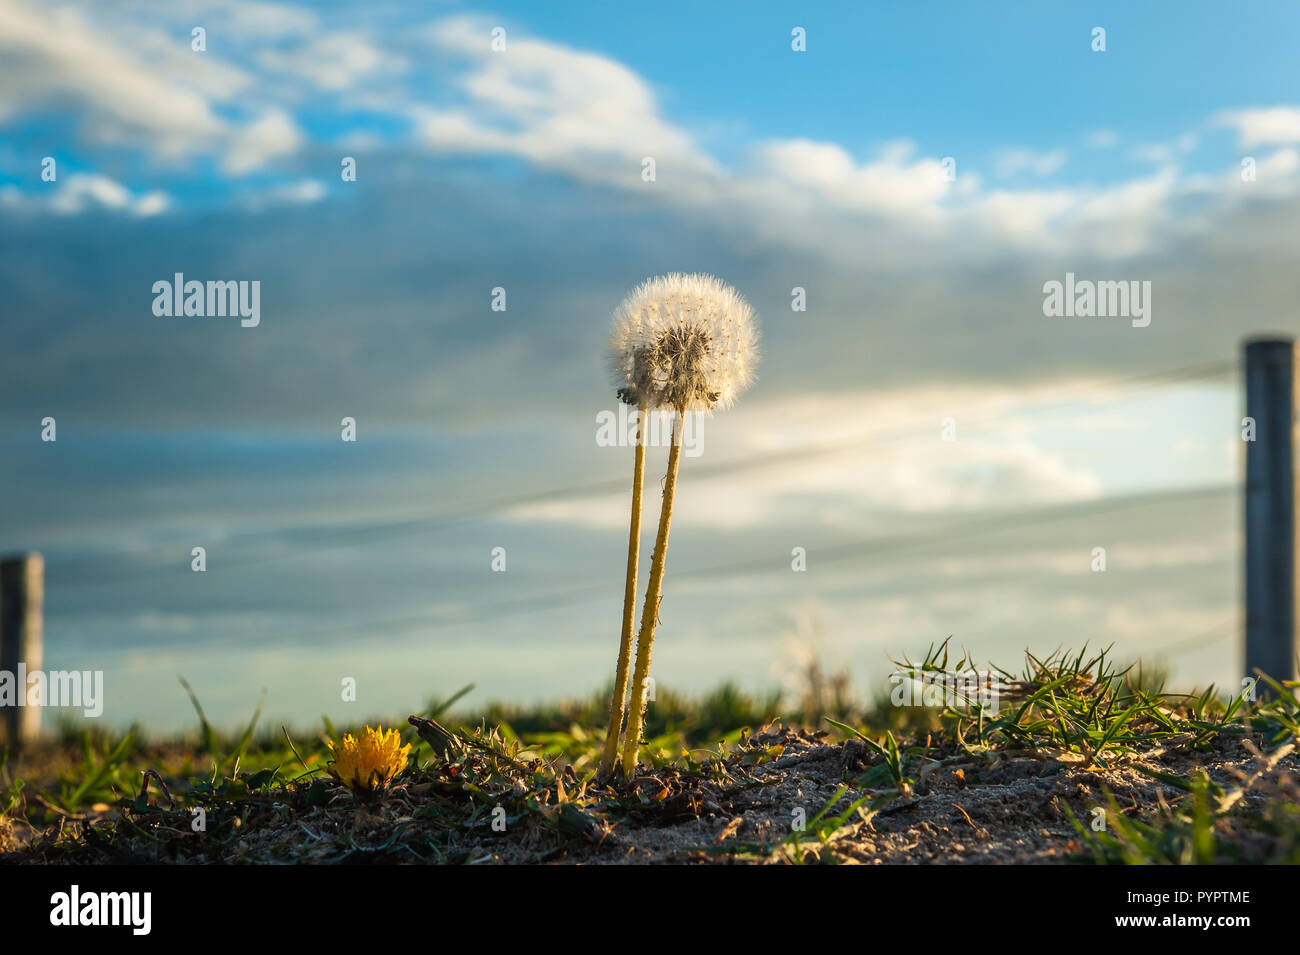 A beach sand dune with the main subject a Dandelion and daisy make an odd couple among the dune grass at Brighton Beach overlooking the Southern Ocean - Stock Image